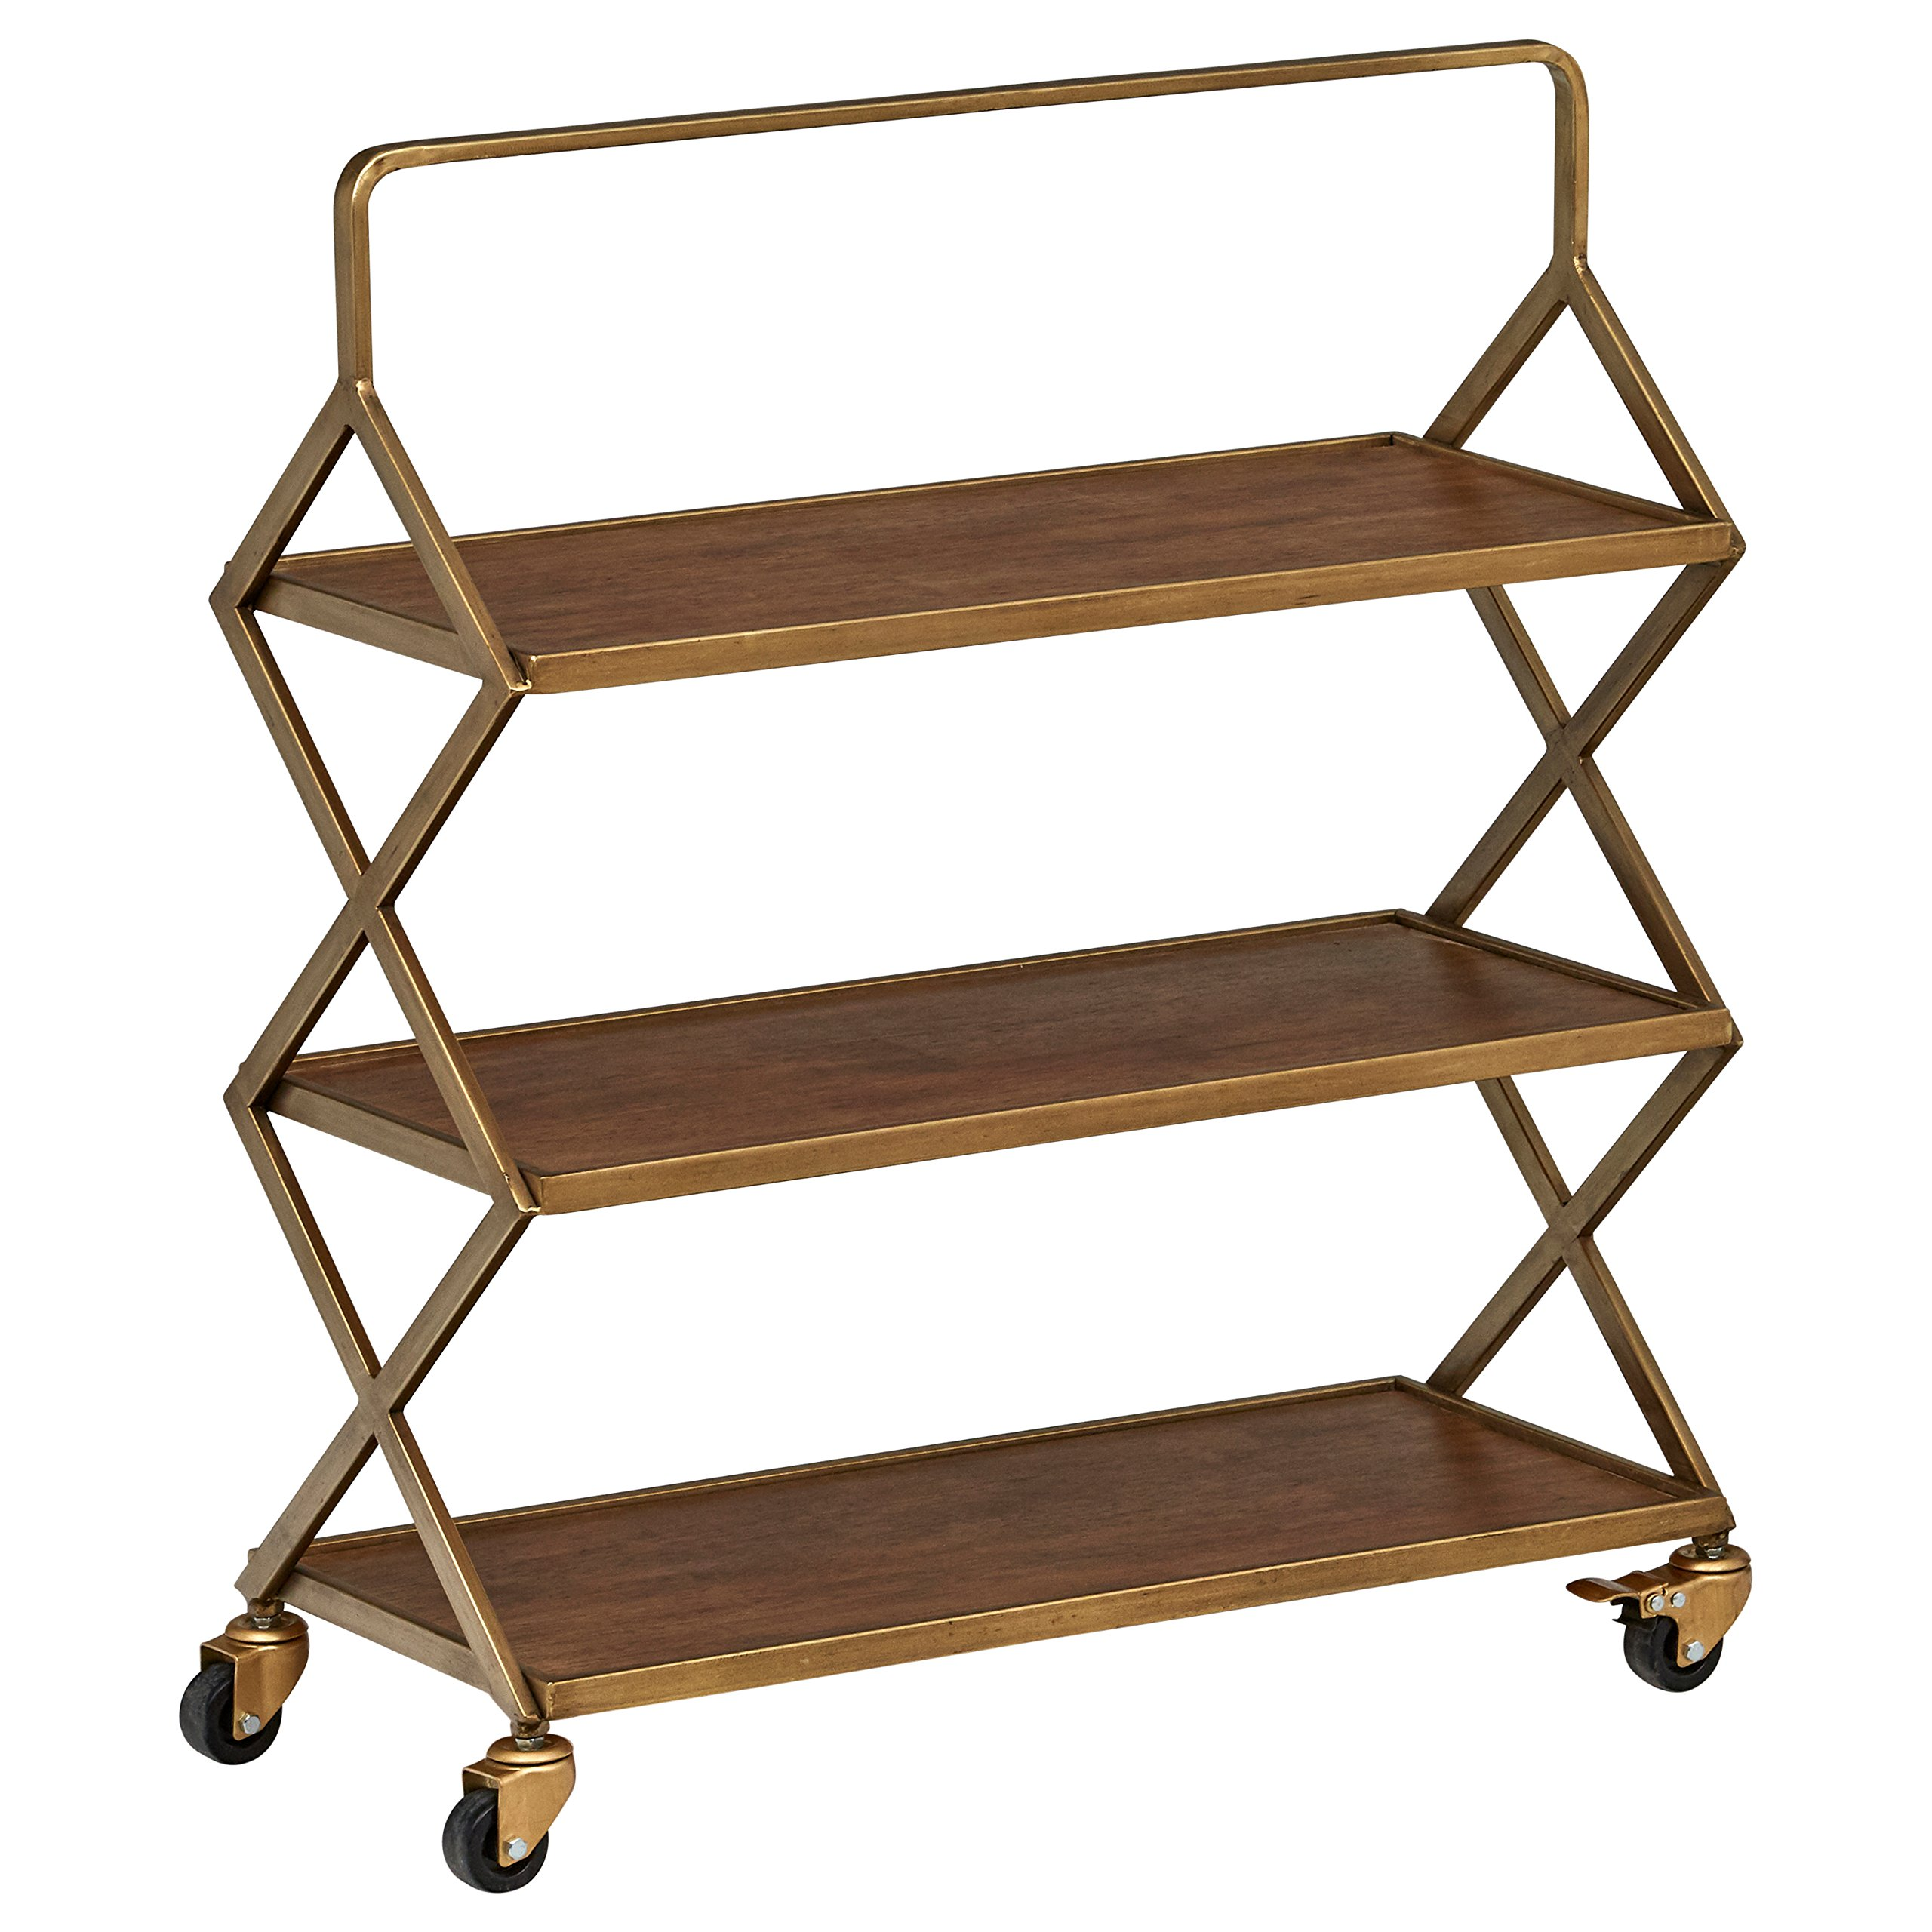 Rivet 3-Tiered Mid-Century Modern Metallic Gold Wood Intersecting Rolling Kitchen Bar Cart with Wheels, 27.9''W, Natural by Rivet